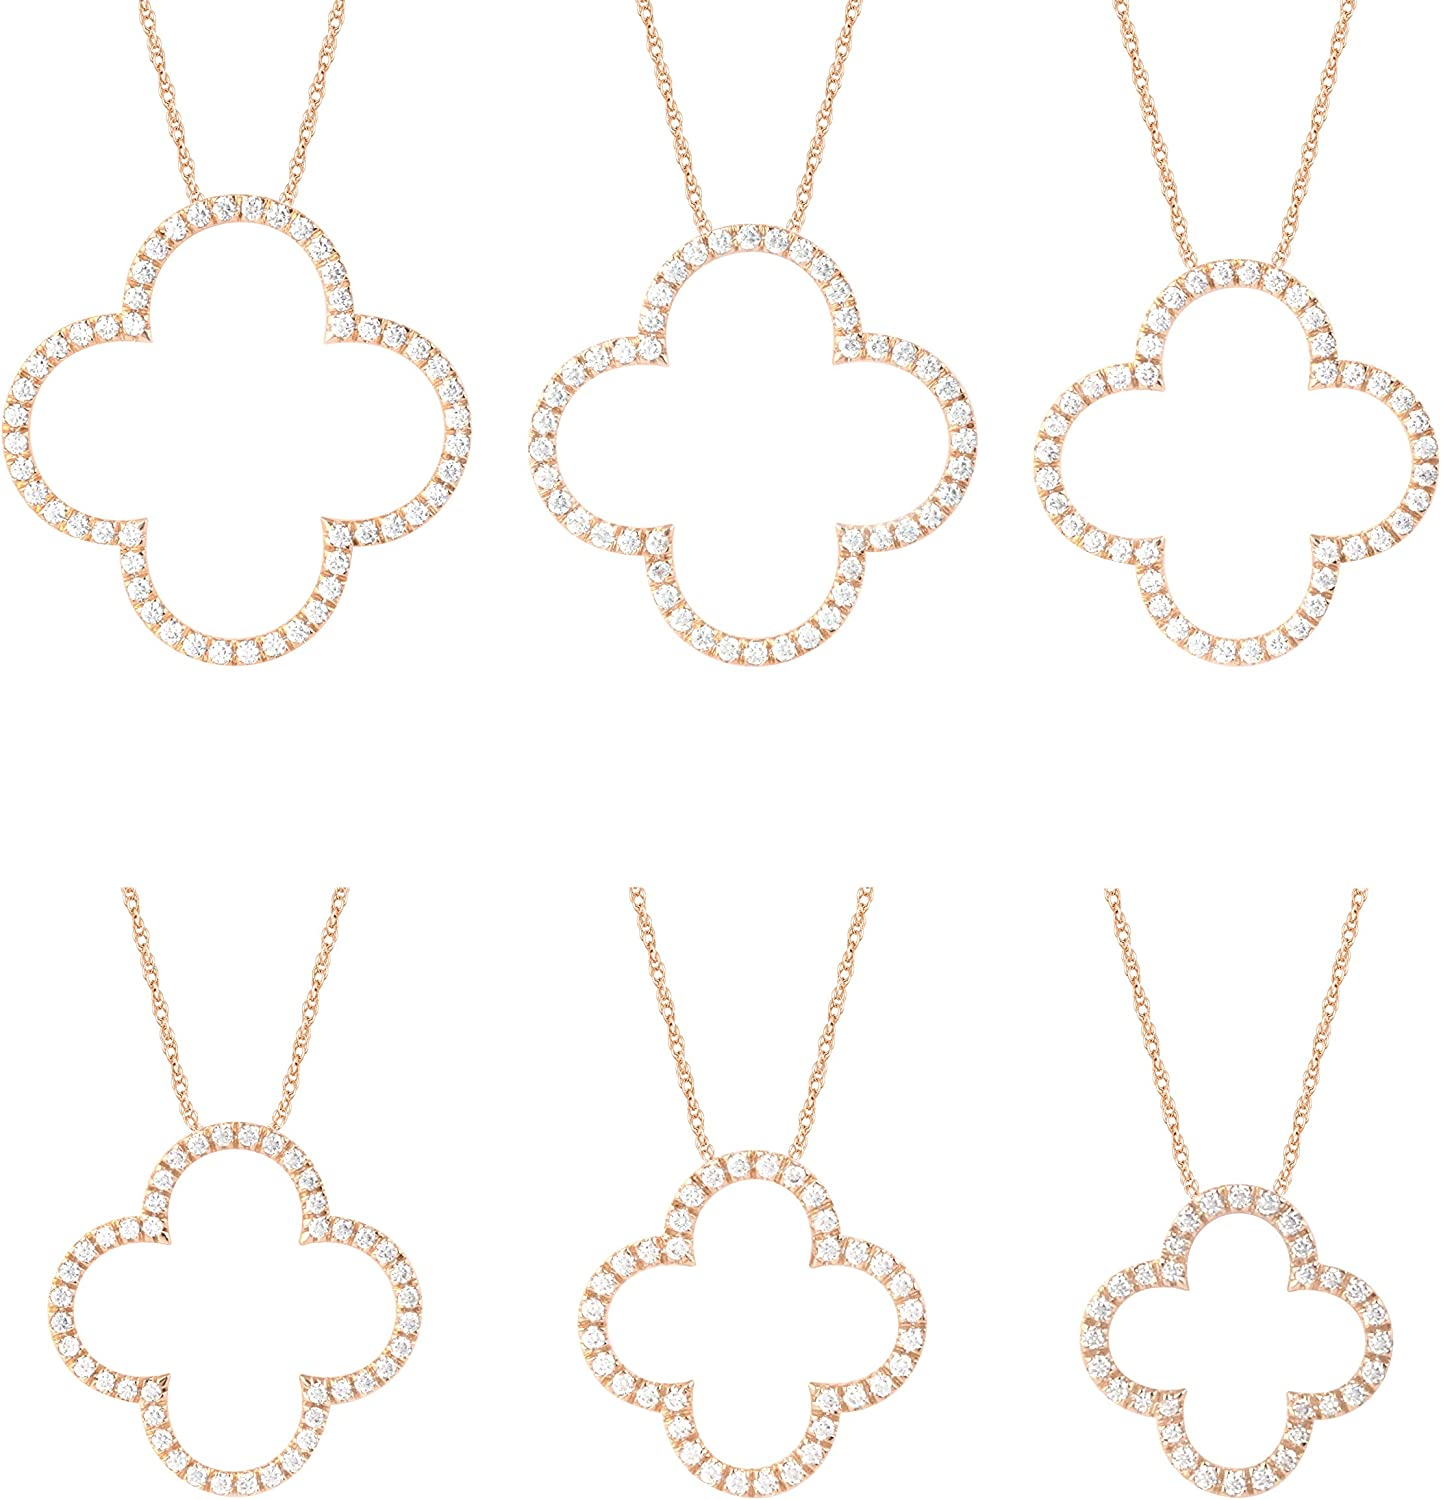 New popularity 14K Gold Clover Shaped Diamond Gift Under blast sales Necklace for Women Pendant